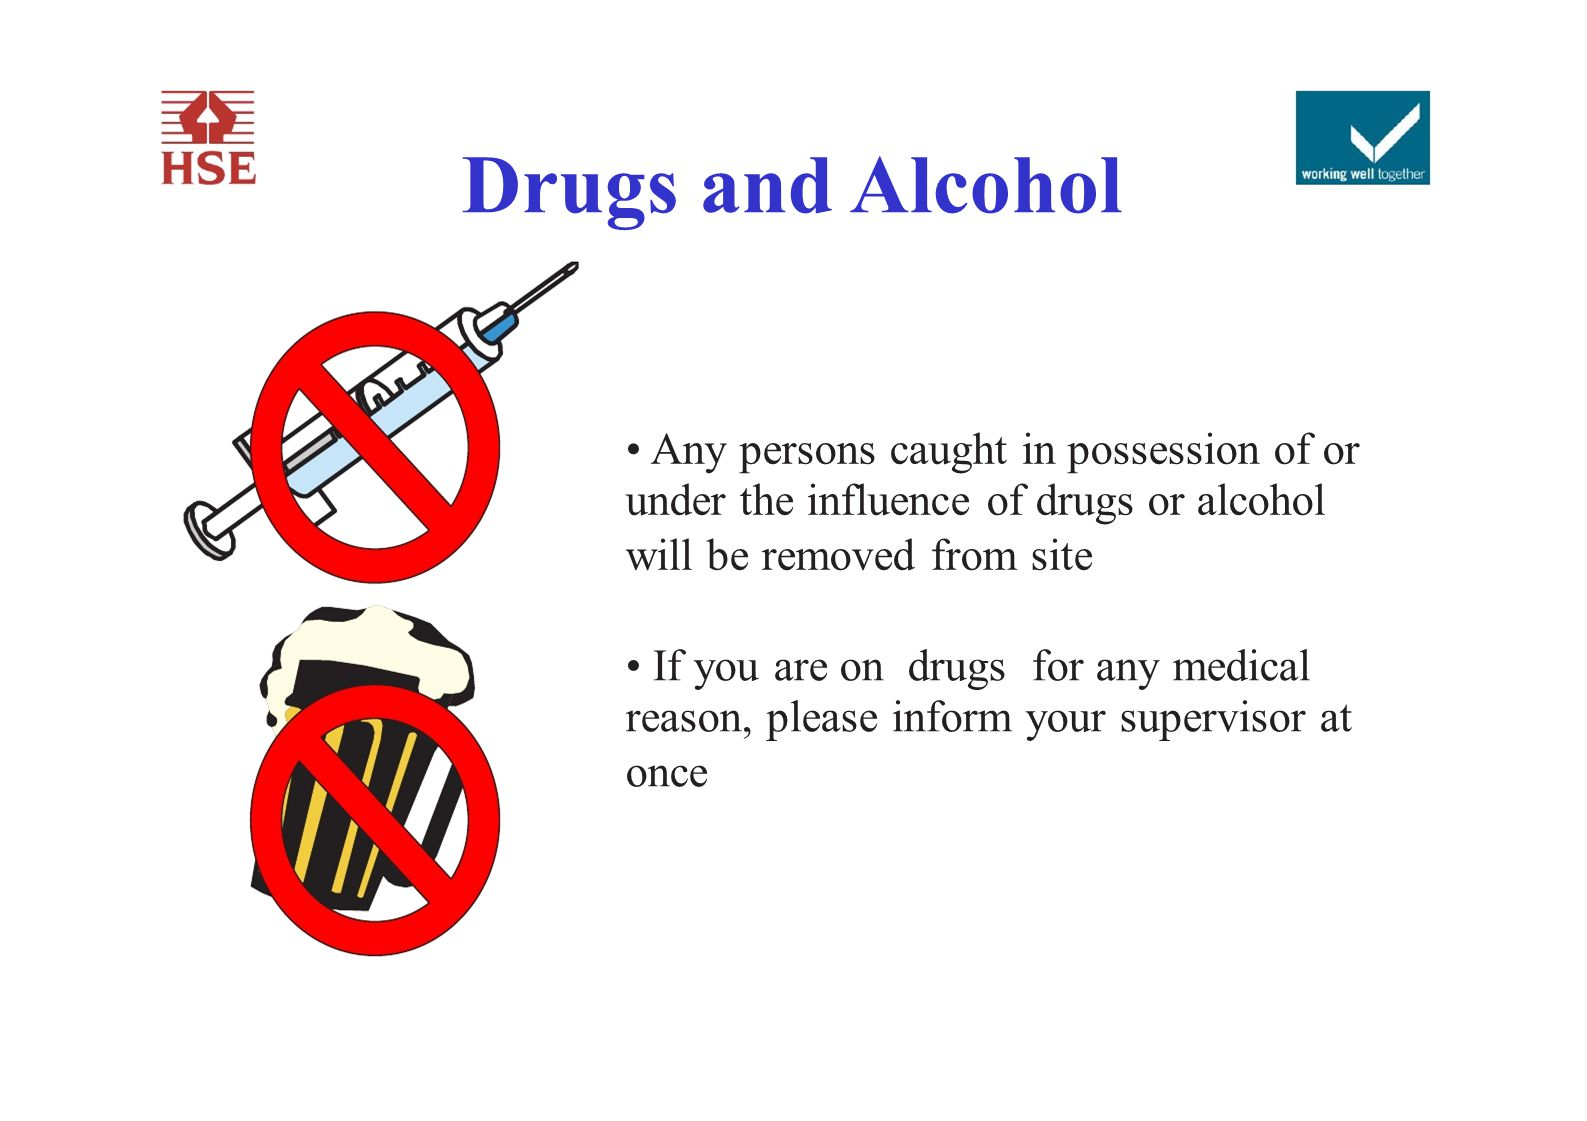 Drugs and Alcohol • Any persons caught in possession of or